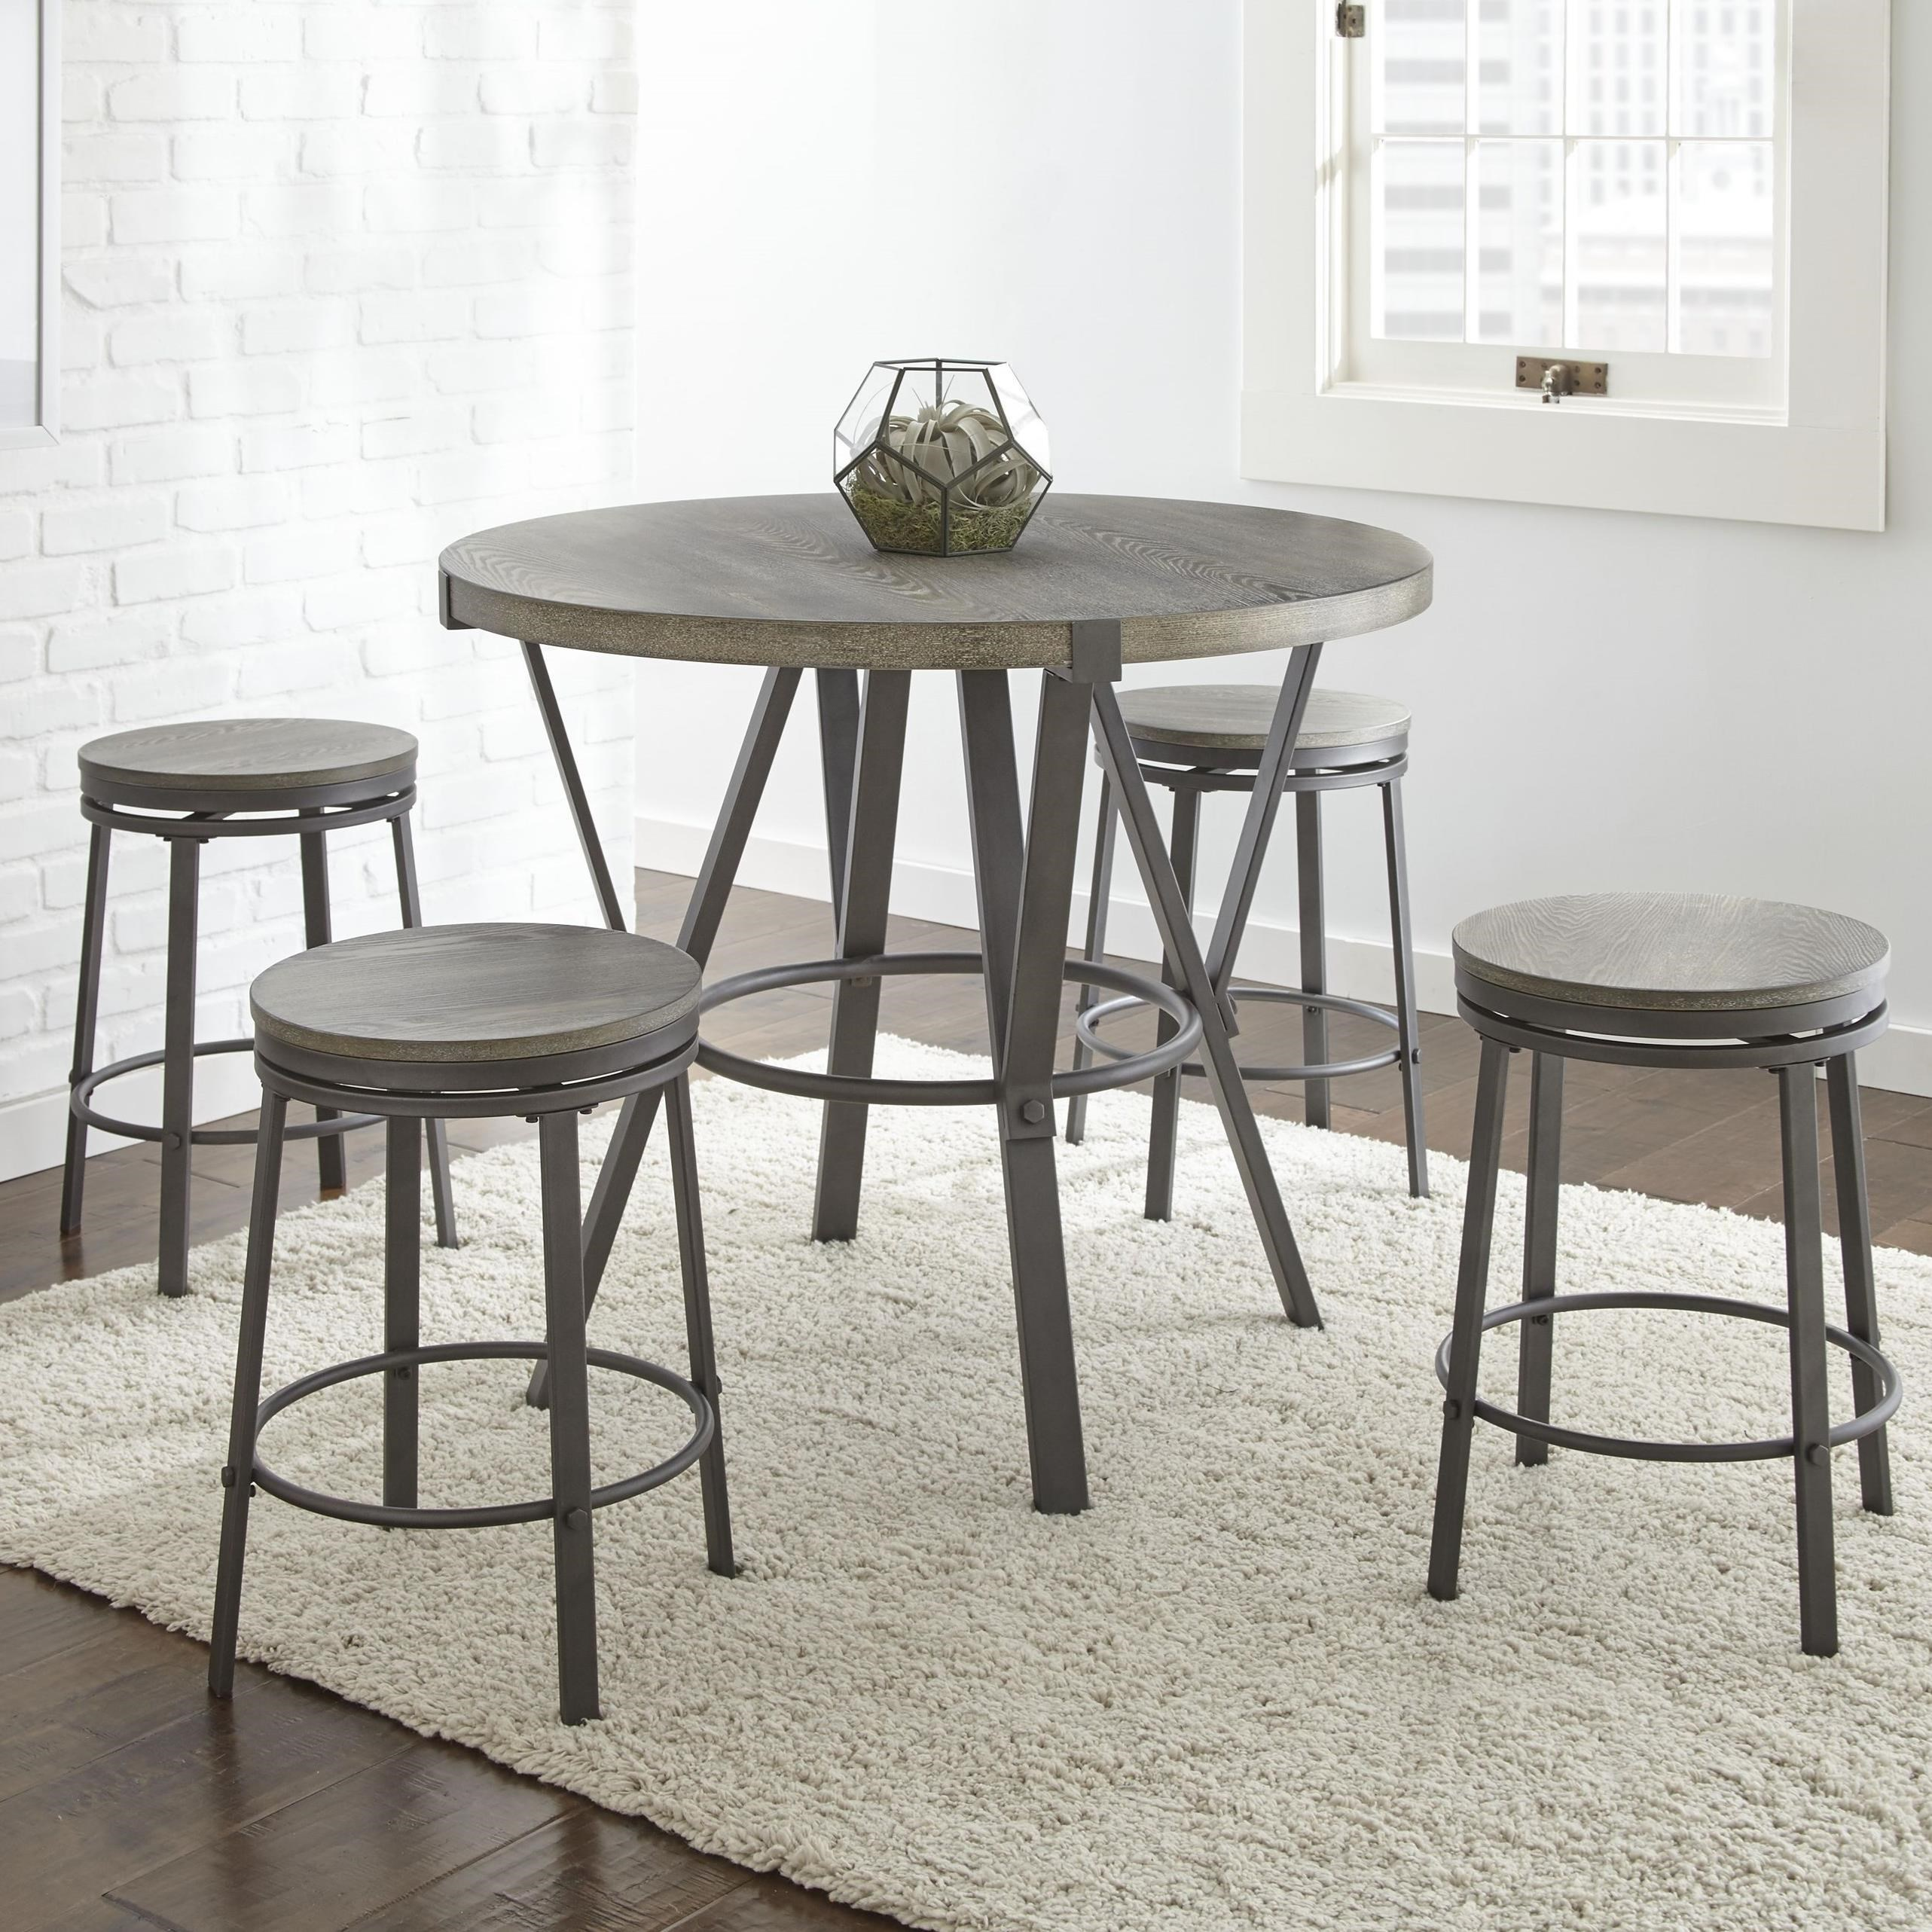 Portland 5 Piece Counter Height Dining Set by Steve Silver at Northeast Factory Direct